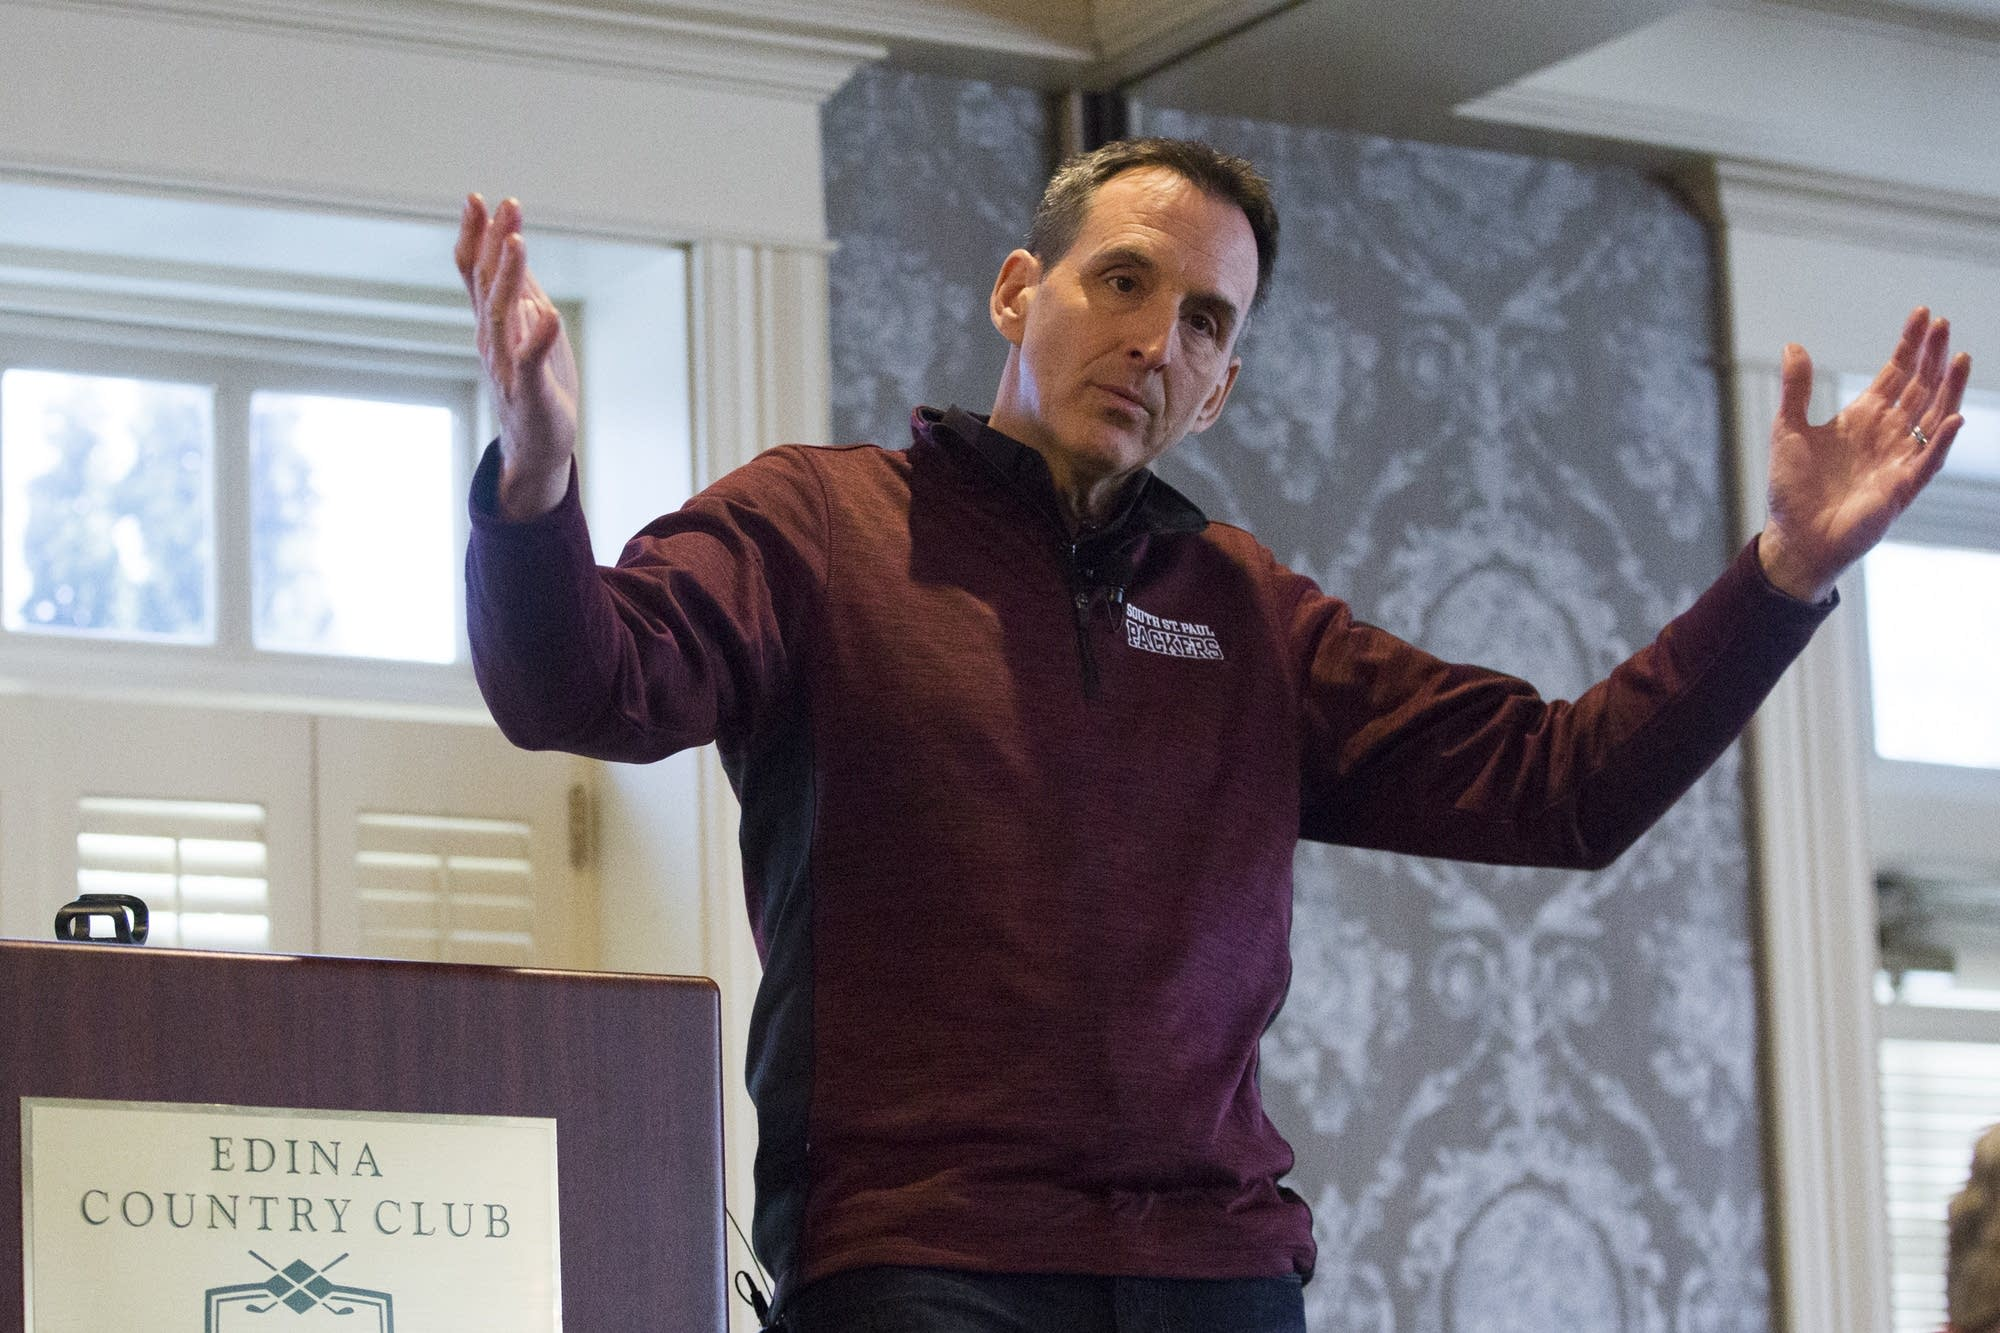 Tim Pawlenty speaks to a crowd about technology and innovation